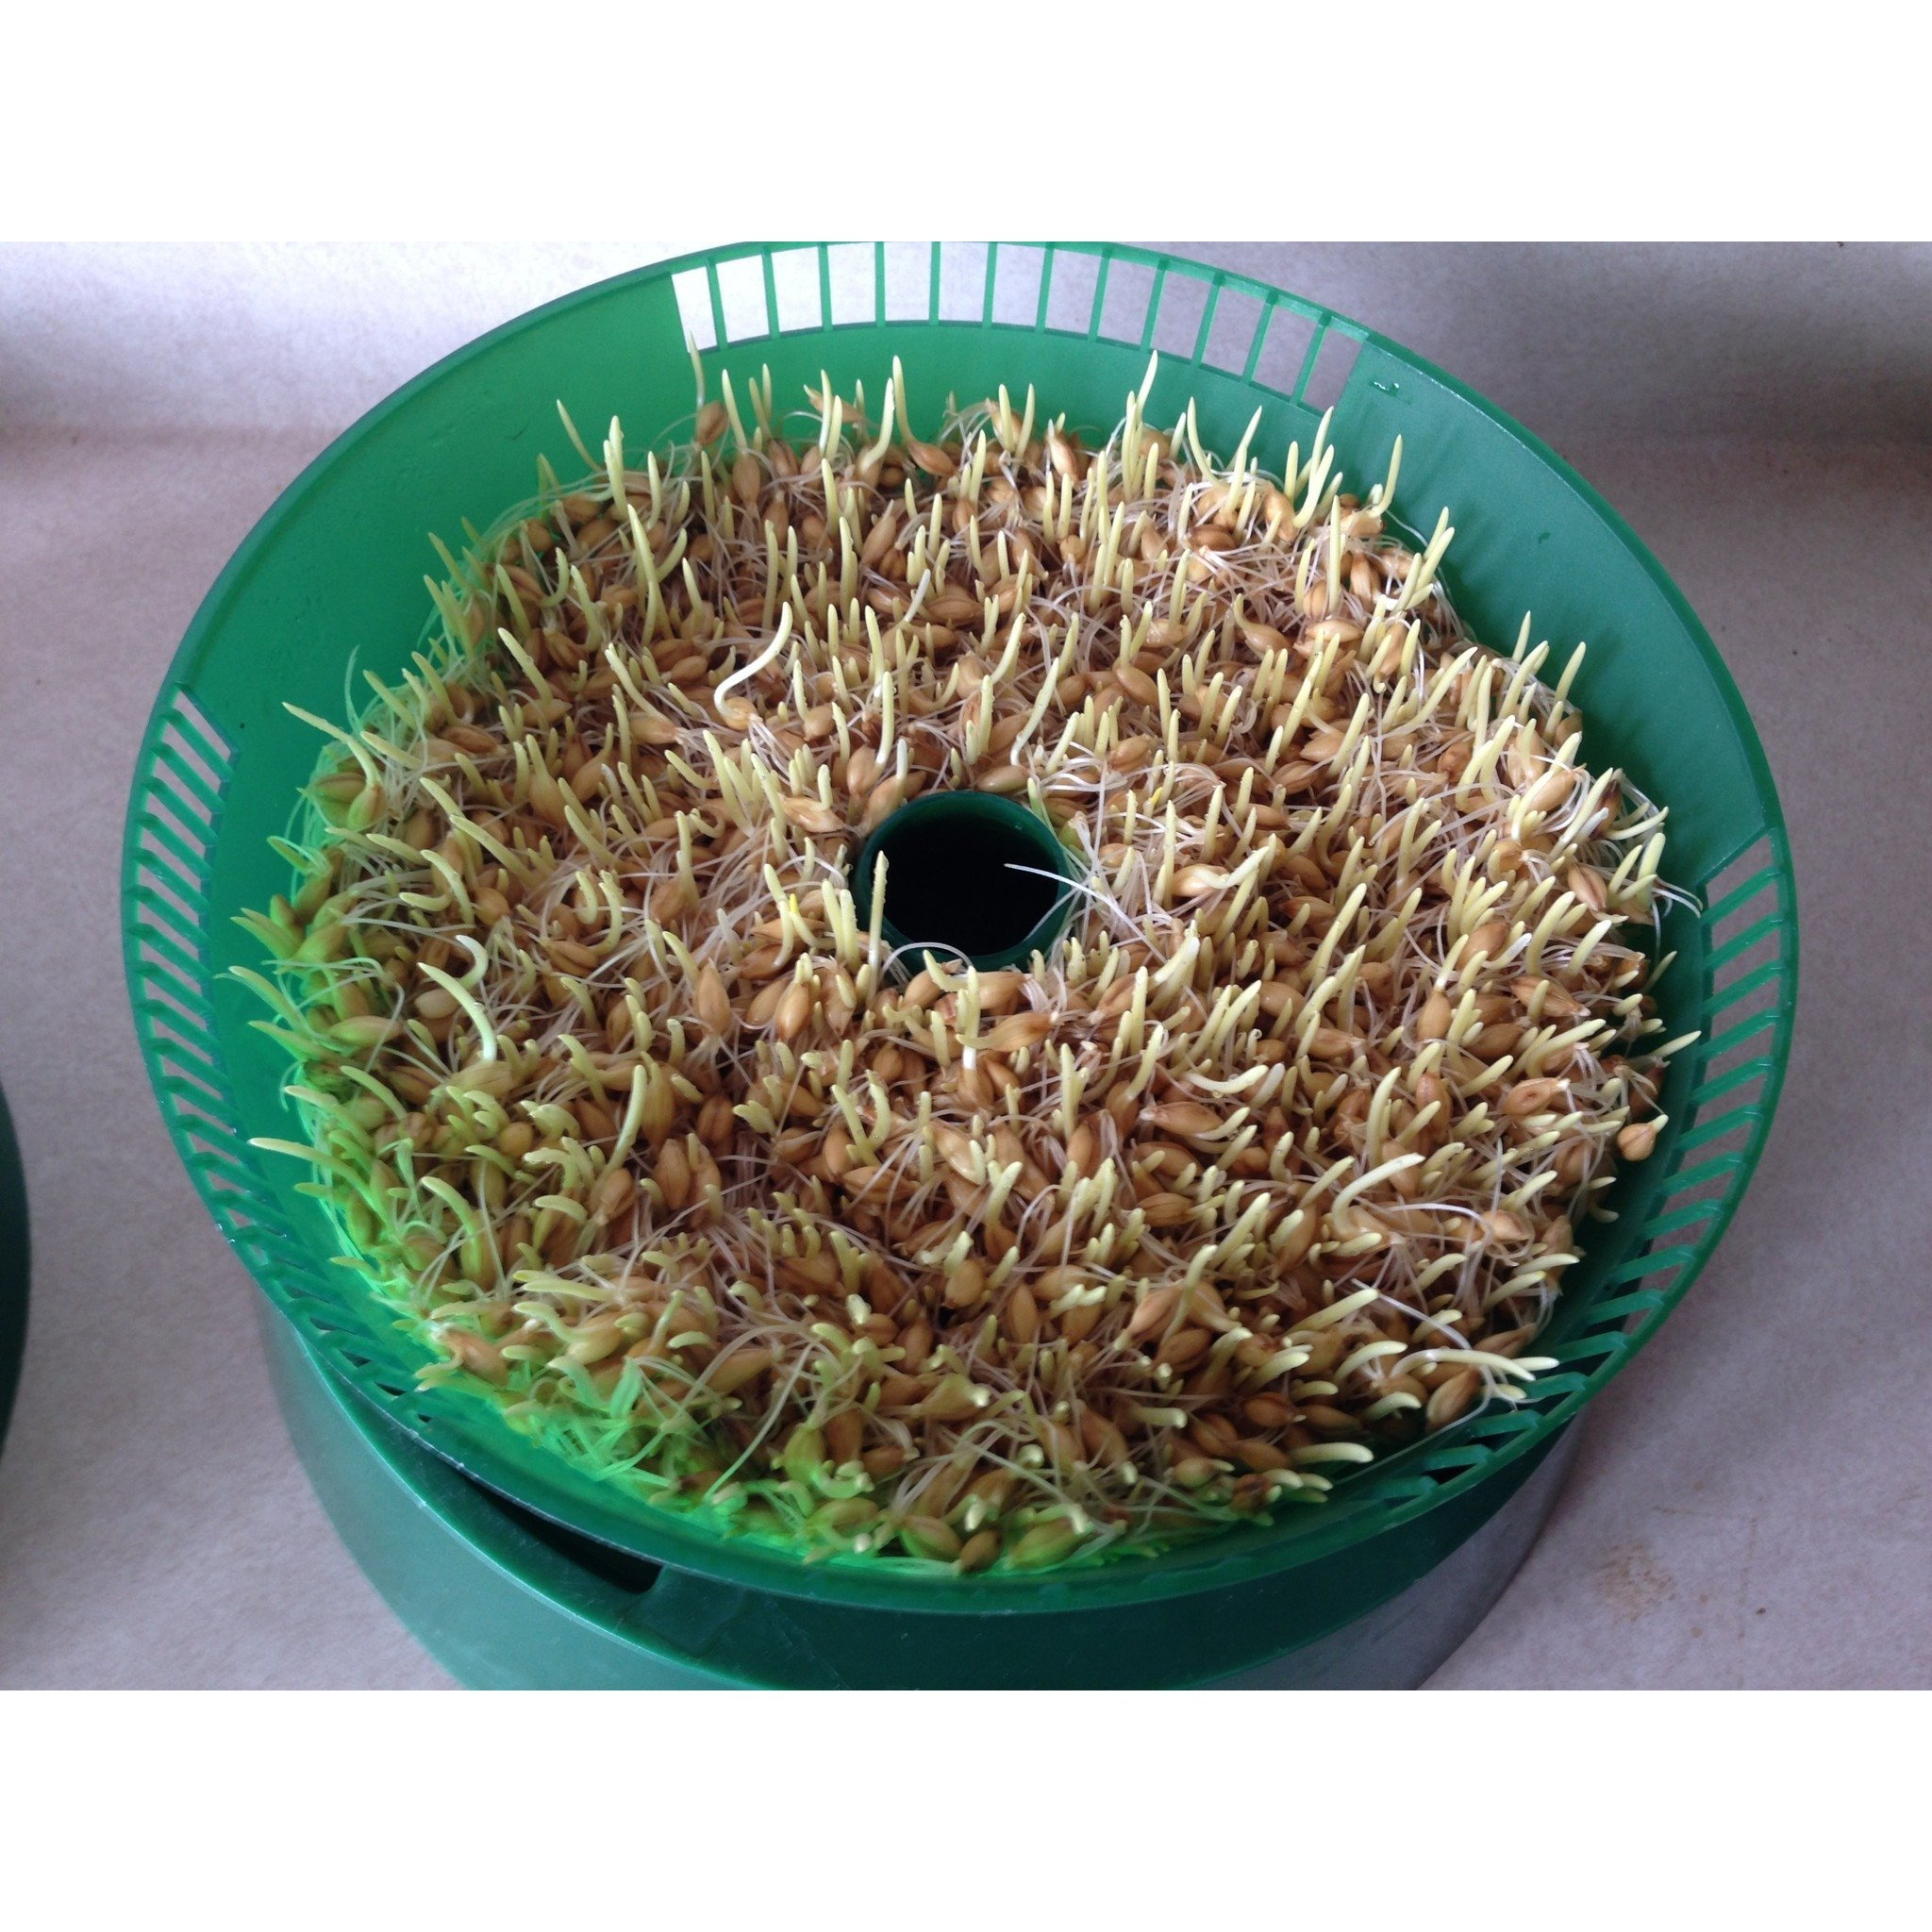 Barley Sprouts - Photo courtesy of Buildasoil